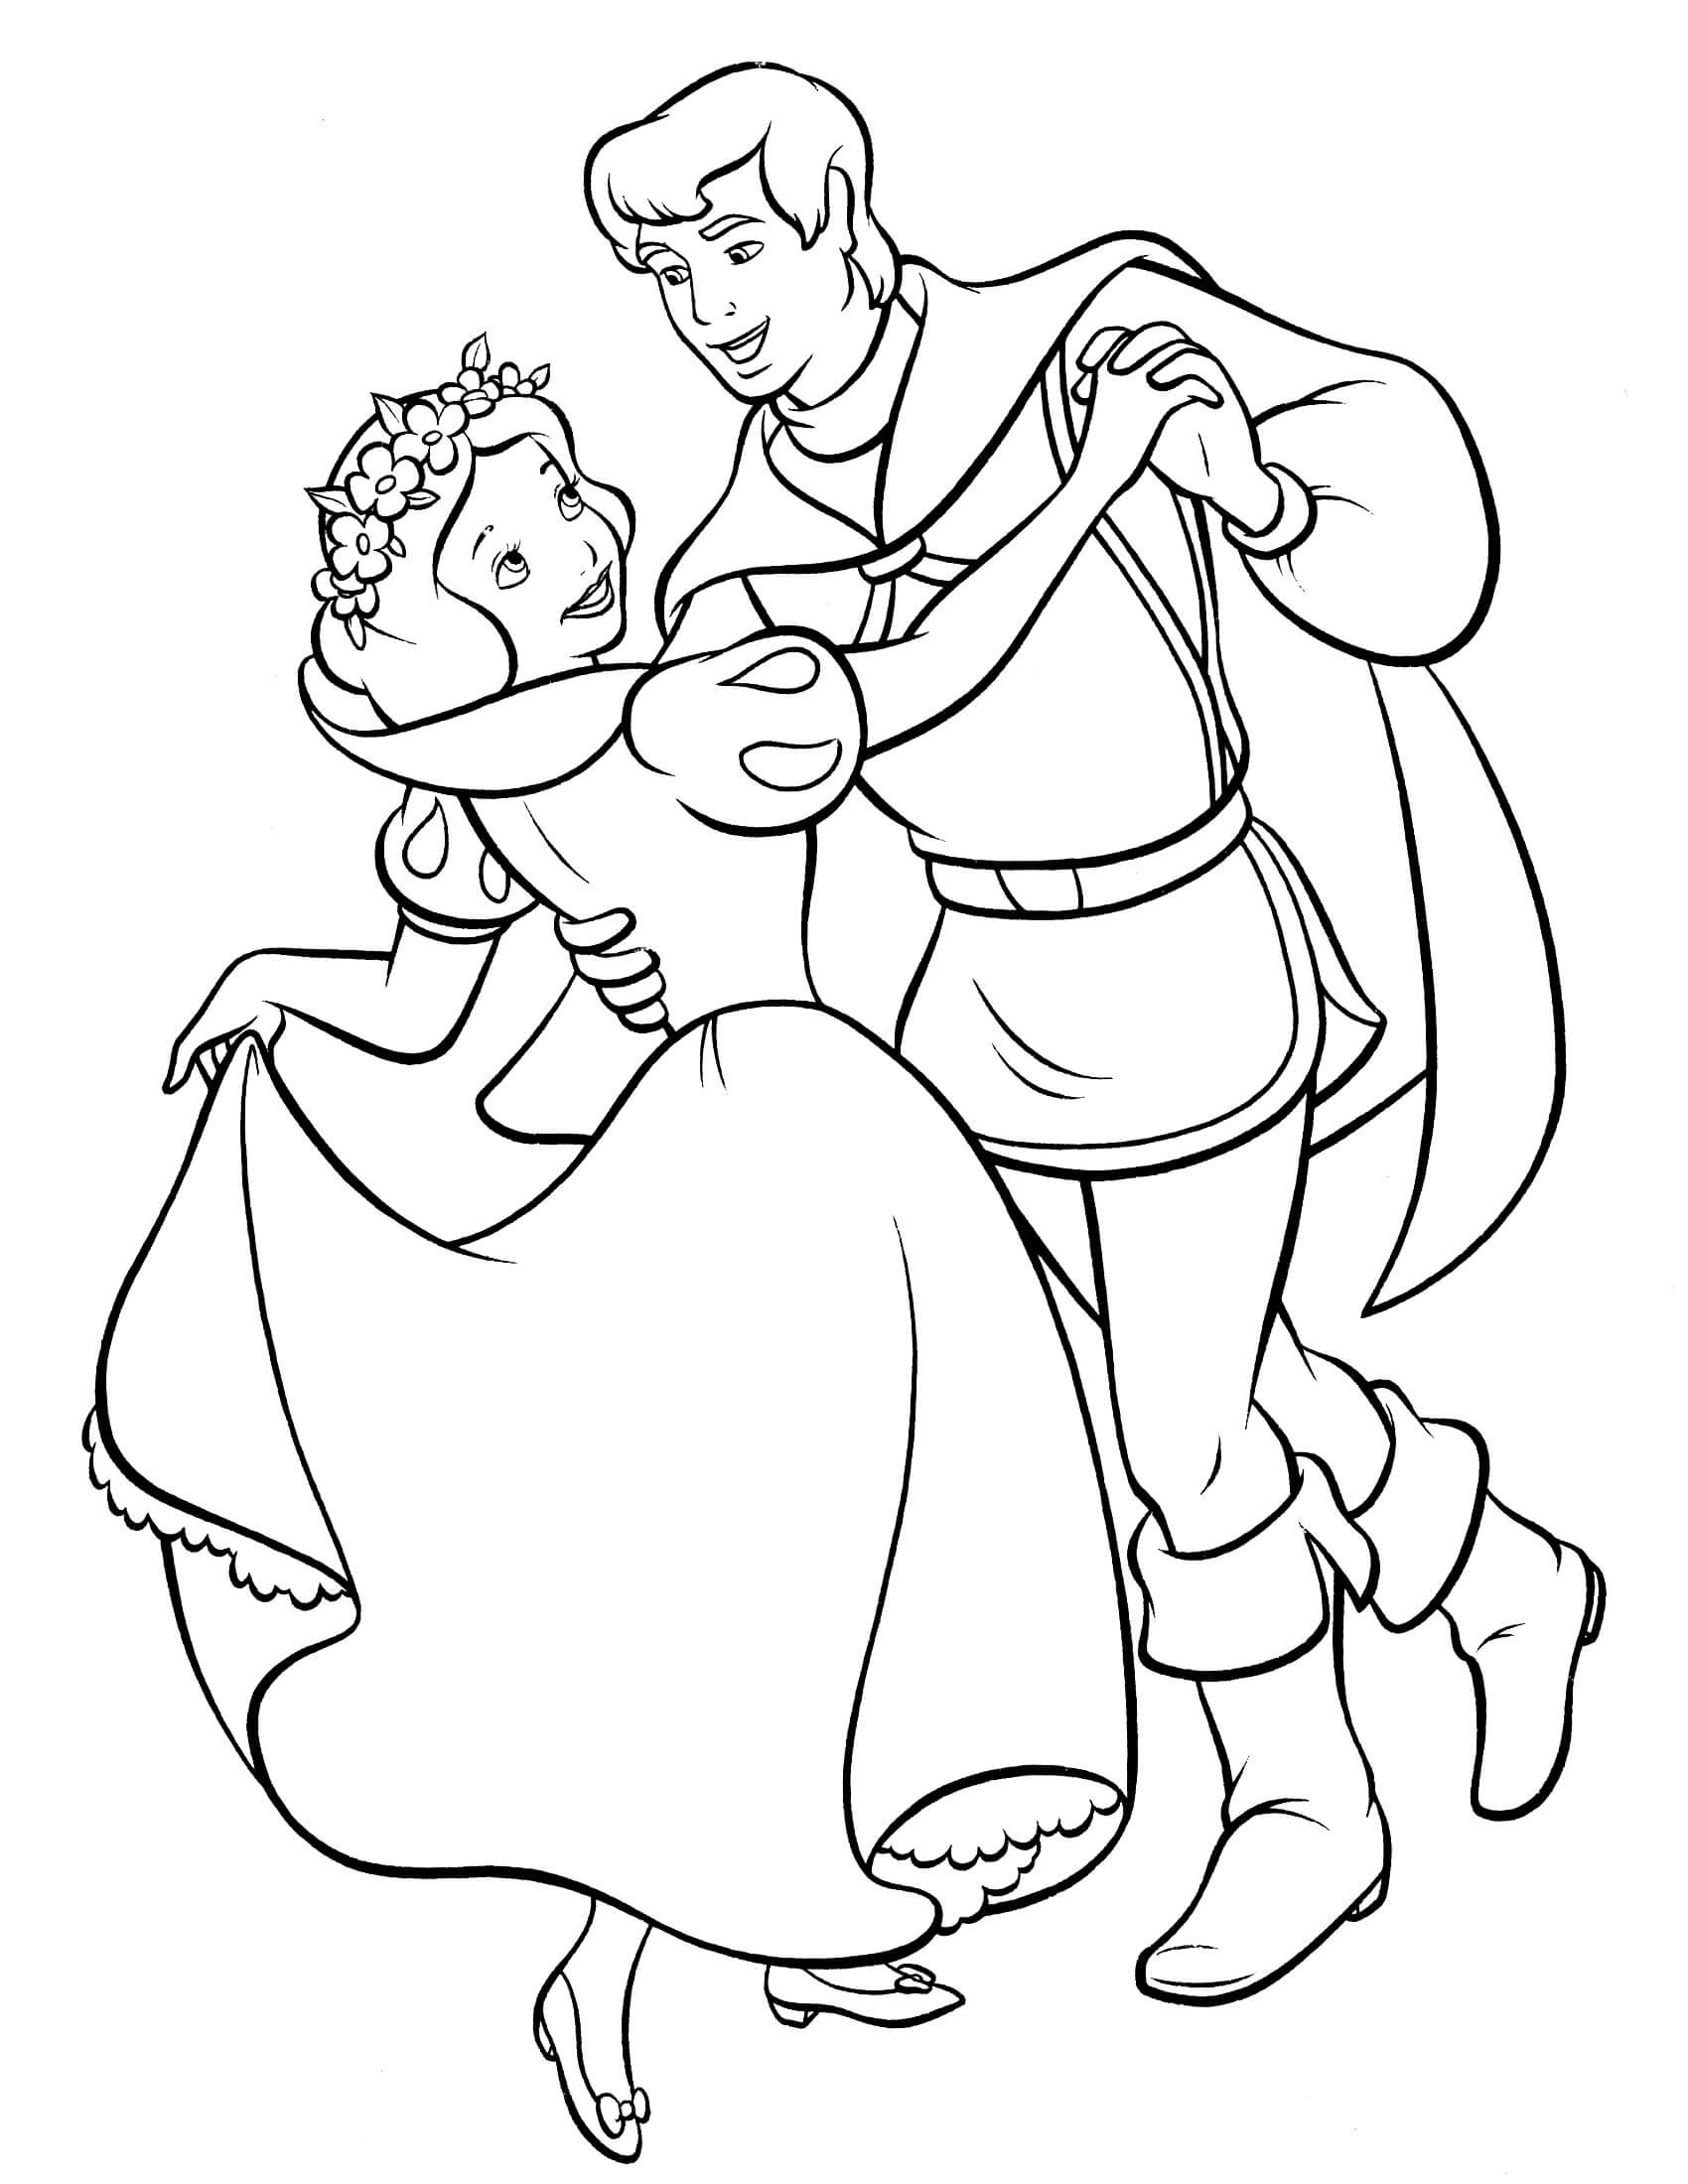 snow white for coloring snow white coloring pages best coloring pages for kids snow coloring white for